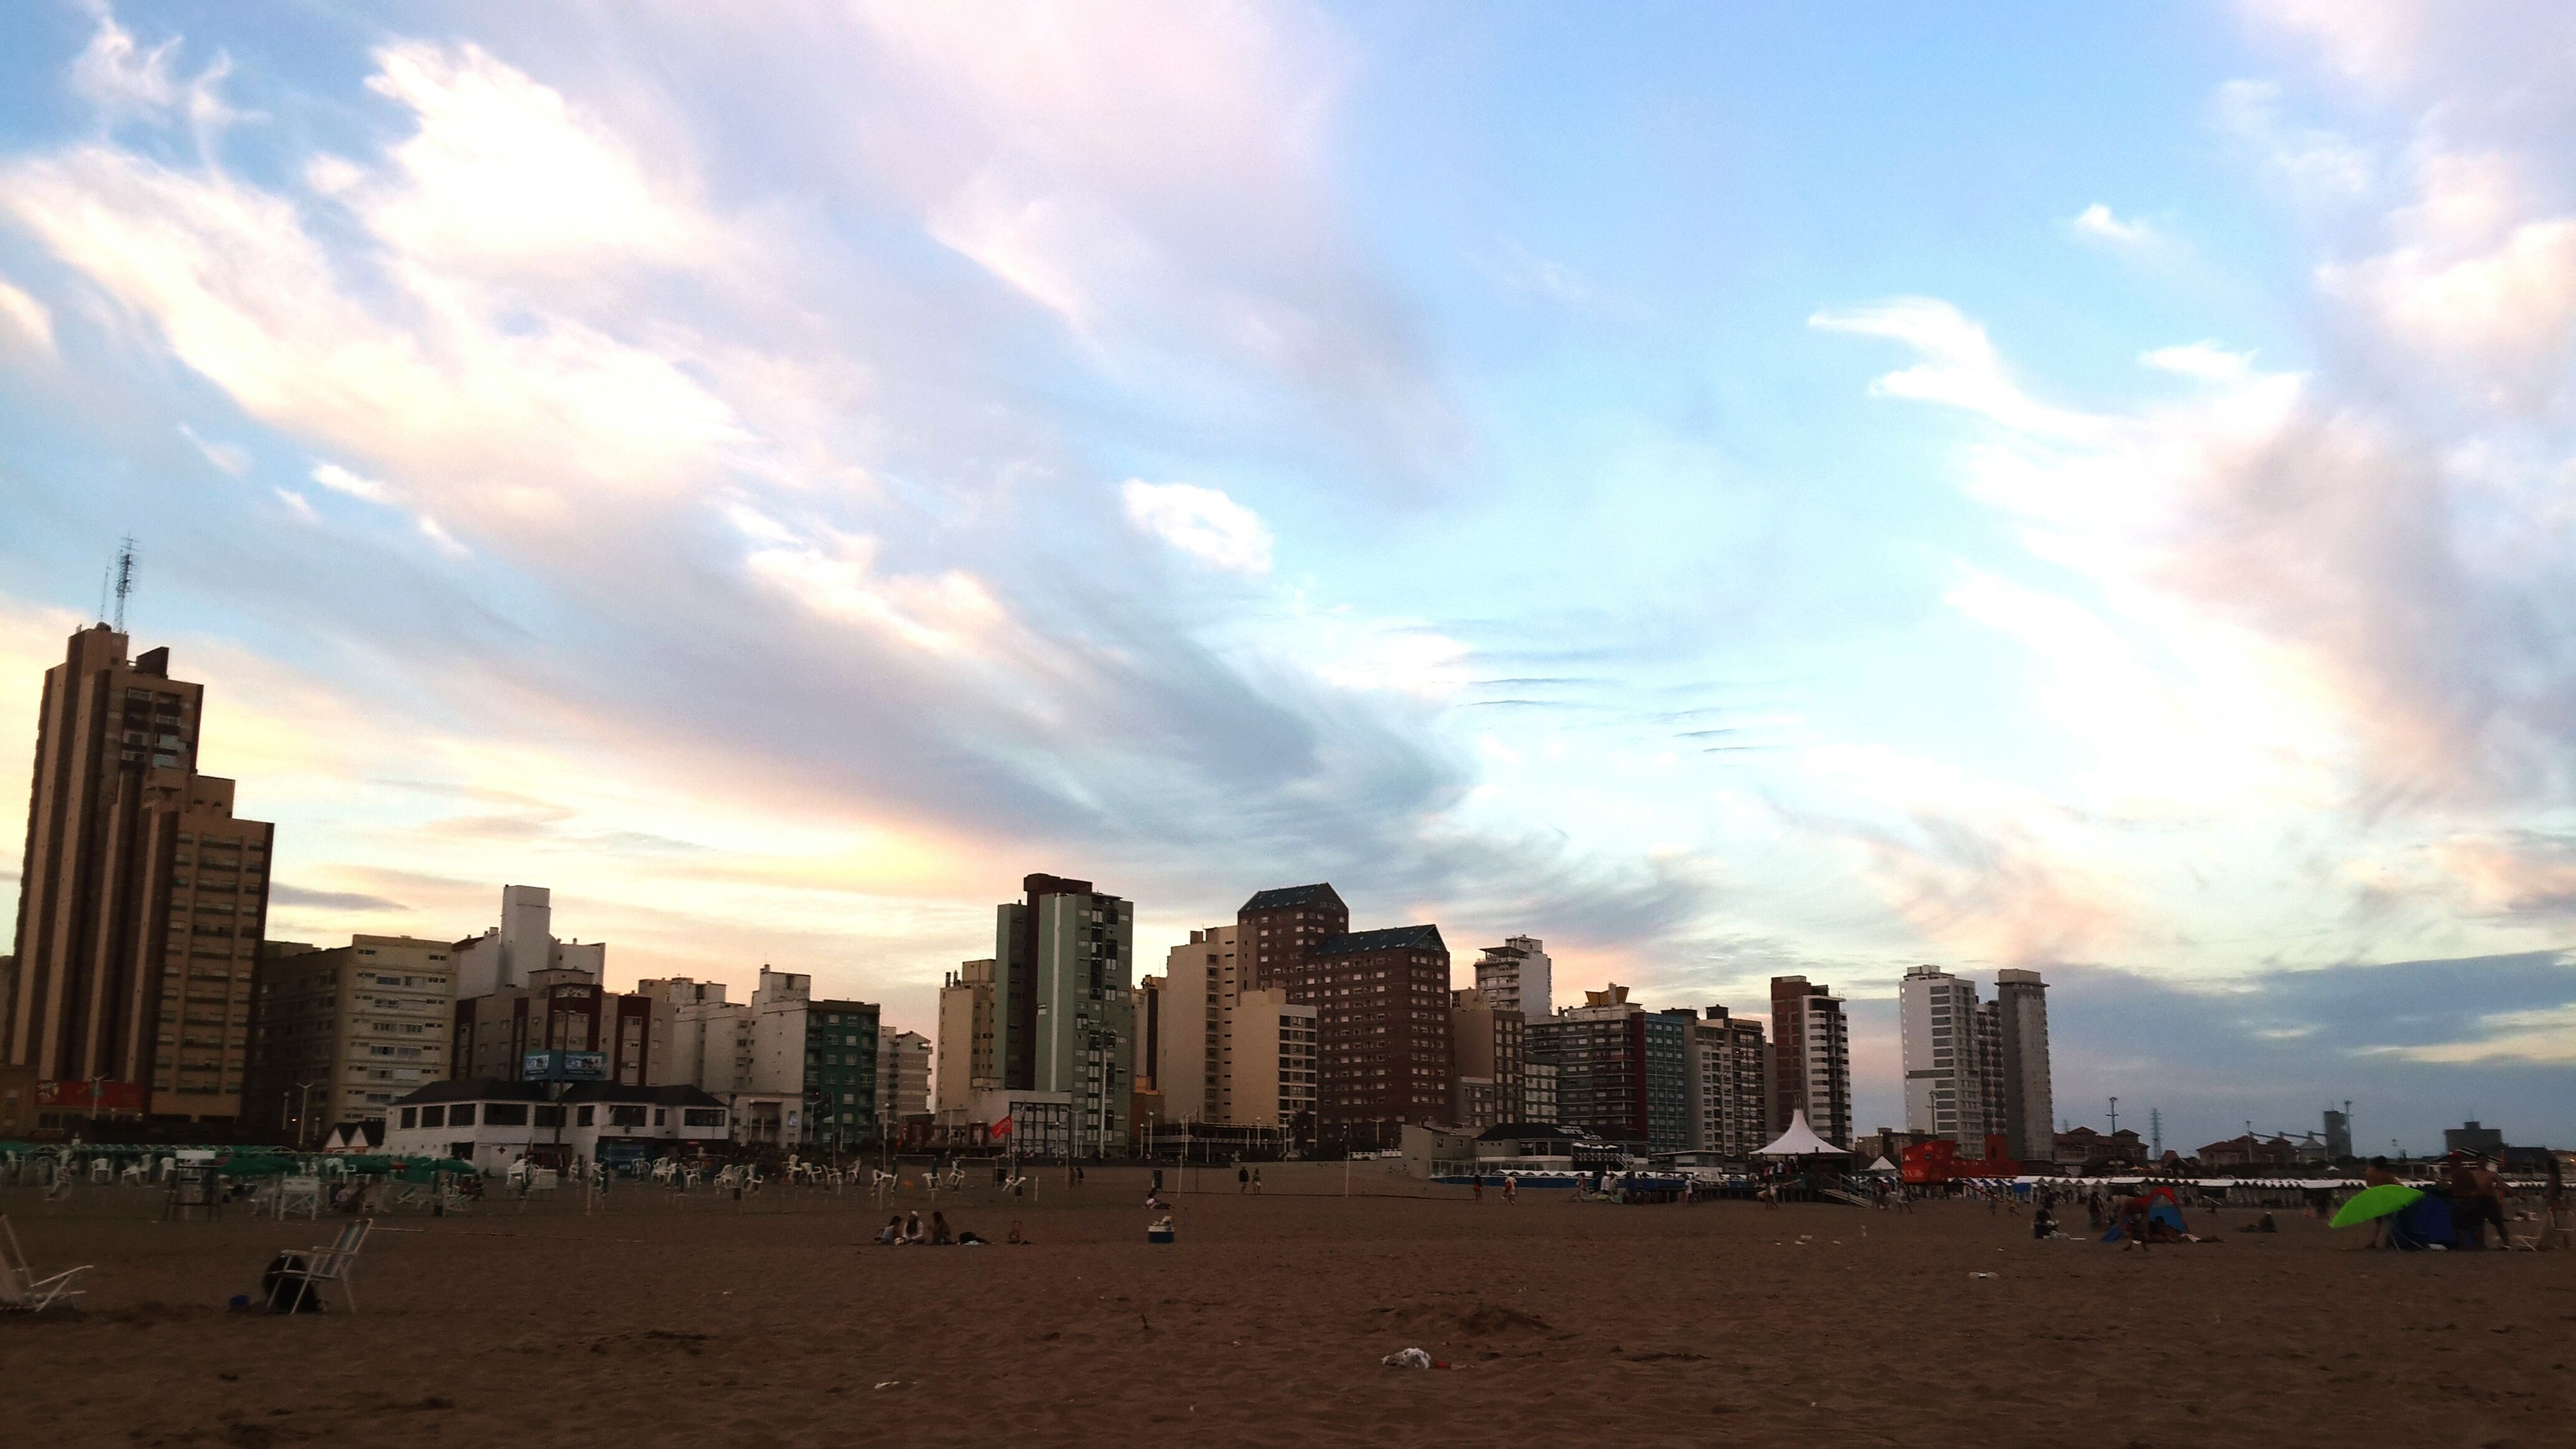 building exterior, architecture, city, built structure, sky, cloud - sky, skyscraper, cityscape, beach, city life, urban skyline, modern, tall - high, large group of people, cloud, office building, tower, cloudy, sand